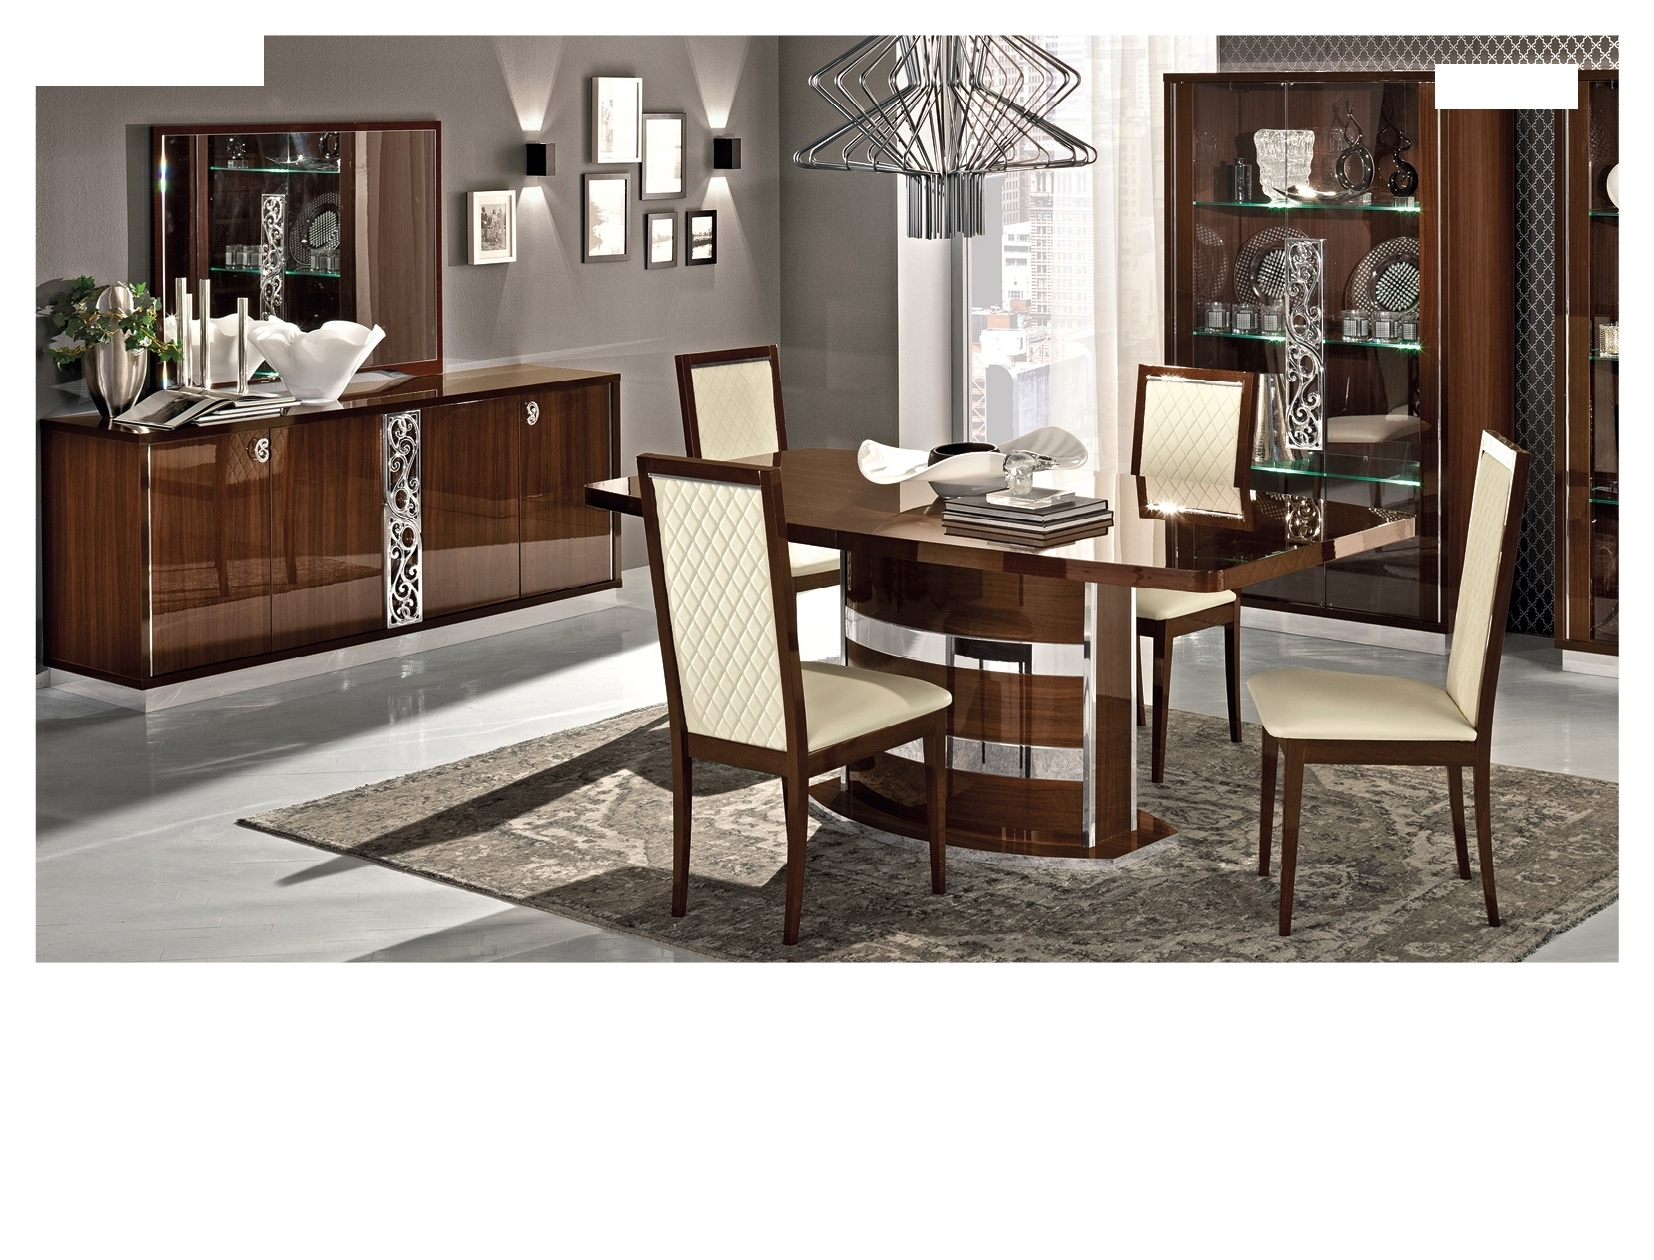 Roma Dining Walnut, Italy, Modern Formal Dining Sets, Dining Room With Regard To Current Roma Dining Tables And Chairs Sets (View 23 of 25)